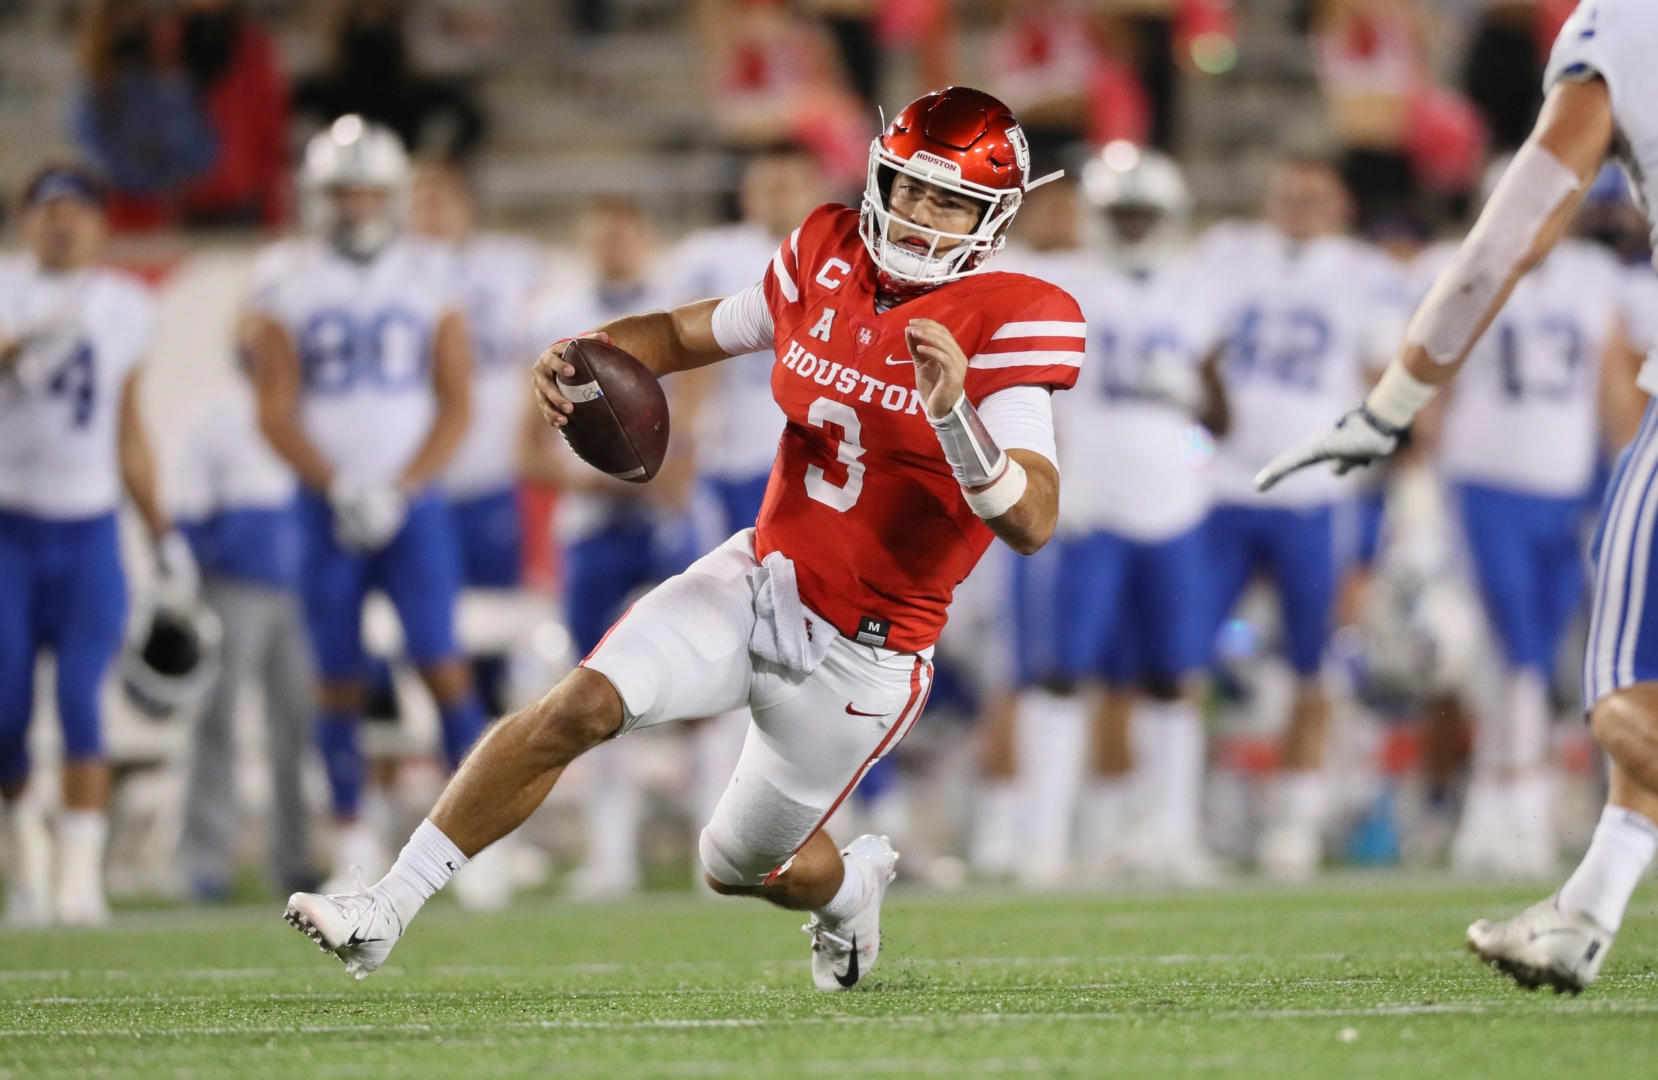 UH junior quarterback begins his slide after a rush against BYU during last Friday's game at TDECU Stadium. Houston lost 43-26 after BYU took complete control of the contest in the final period. | Courtesy of UH athletics